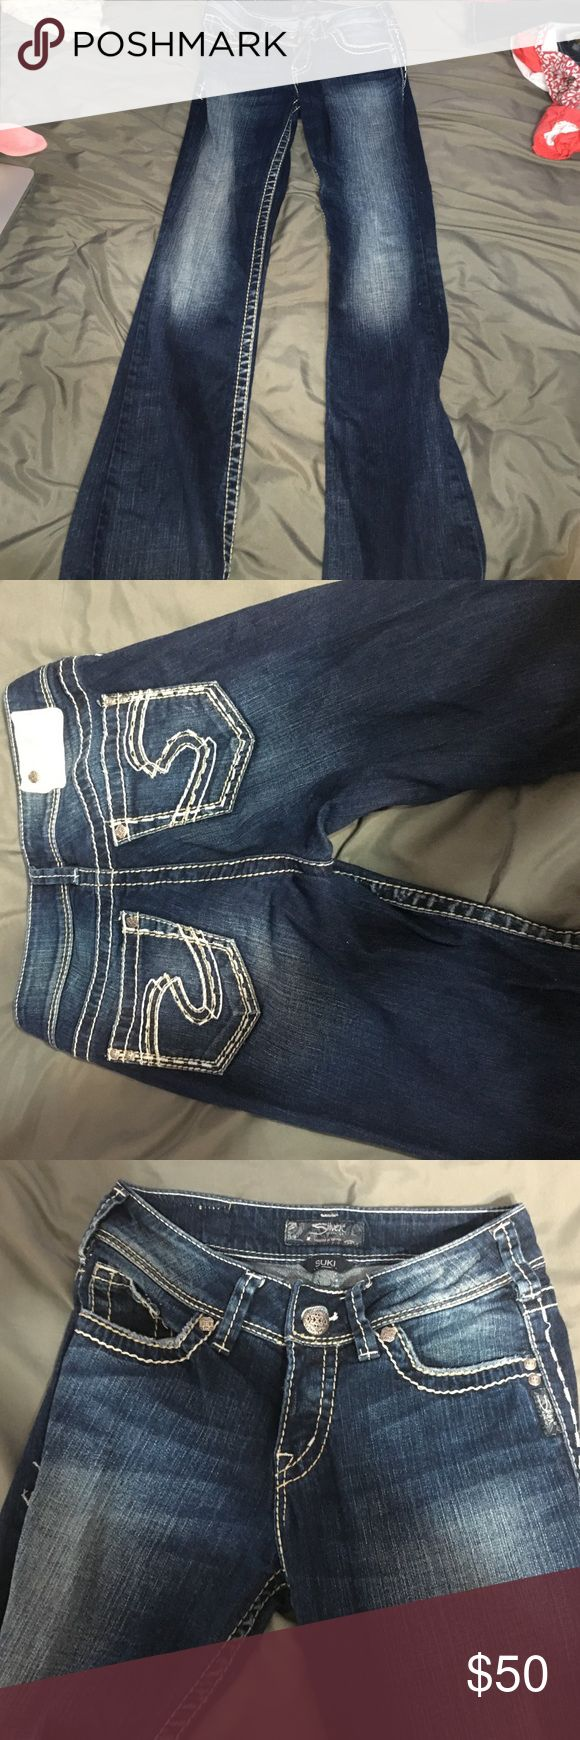 Silver Jeans Size 14